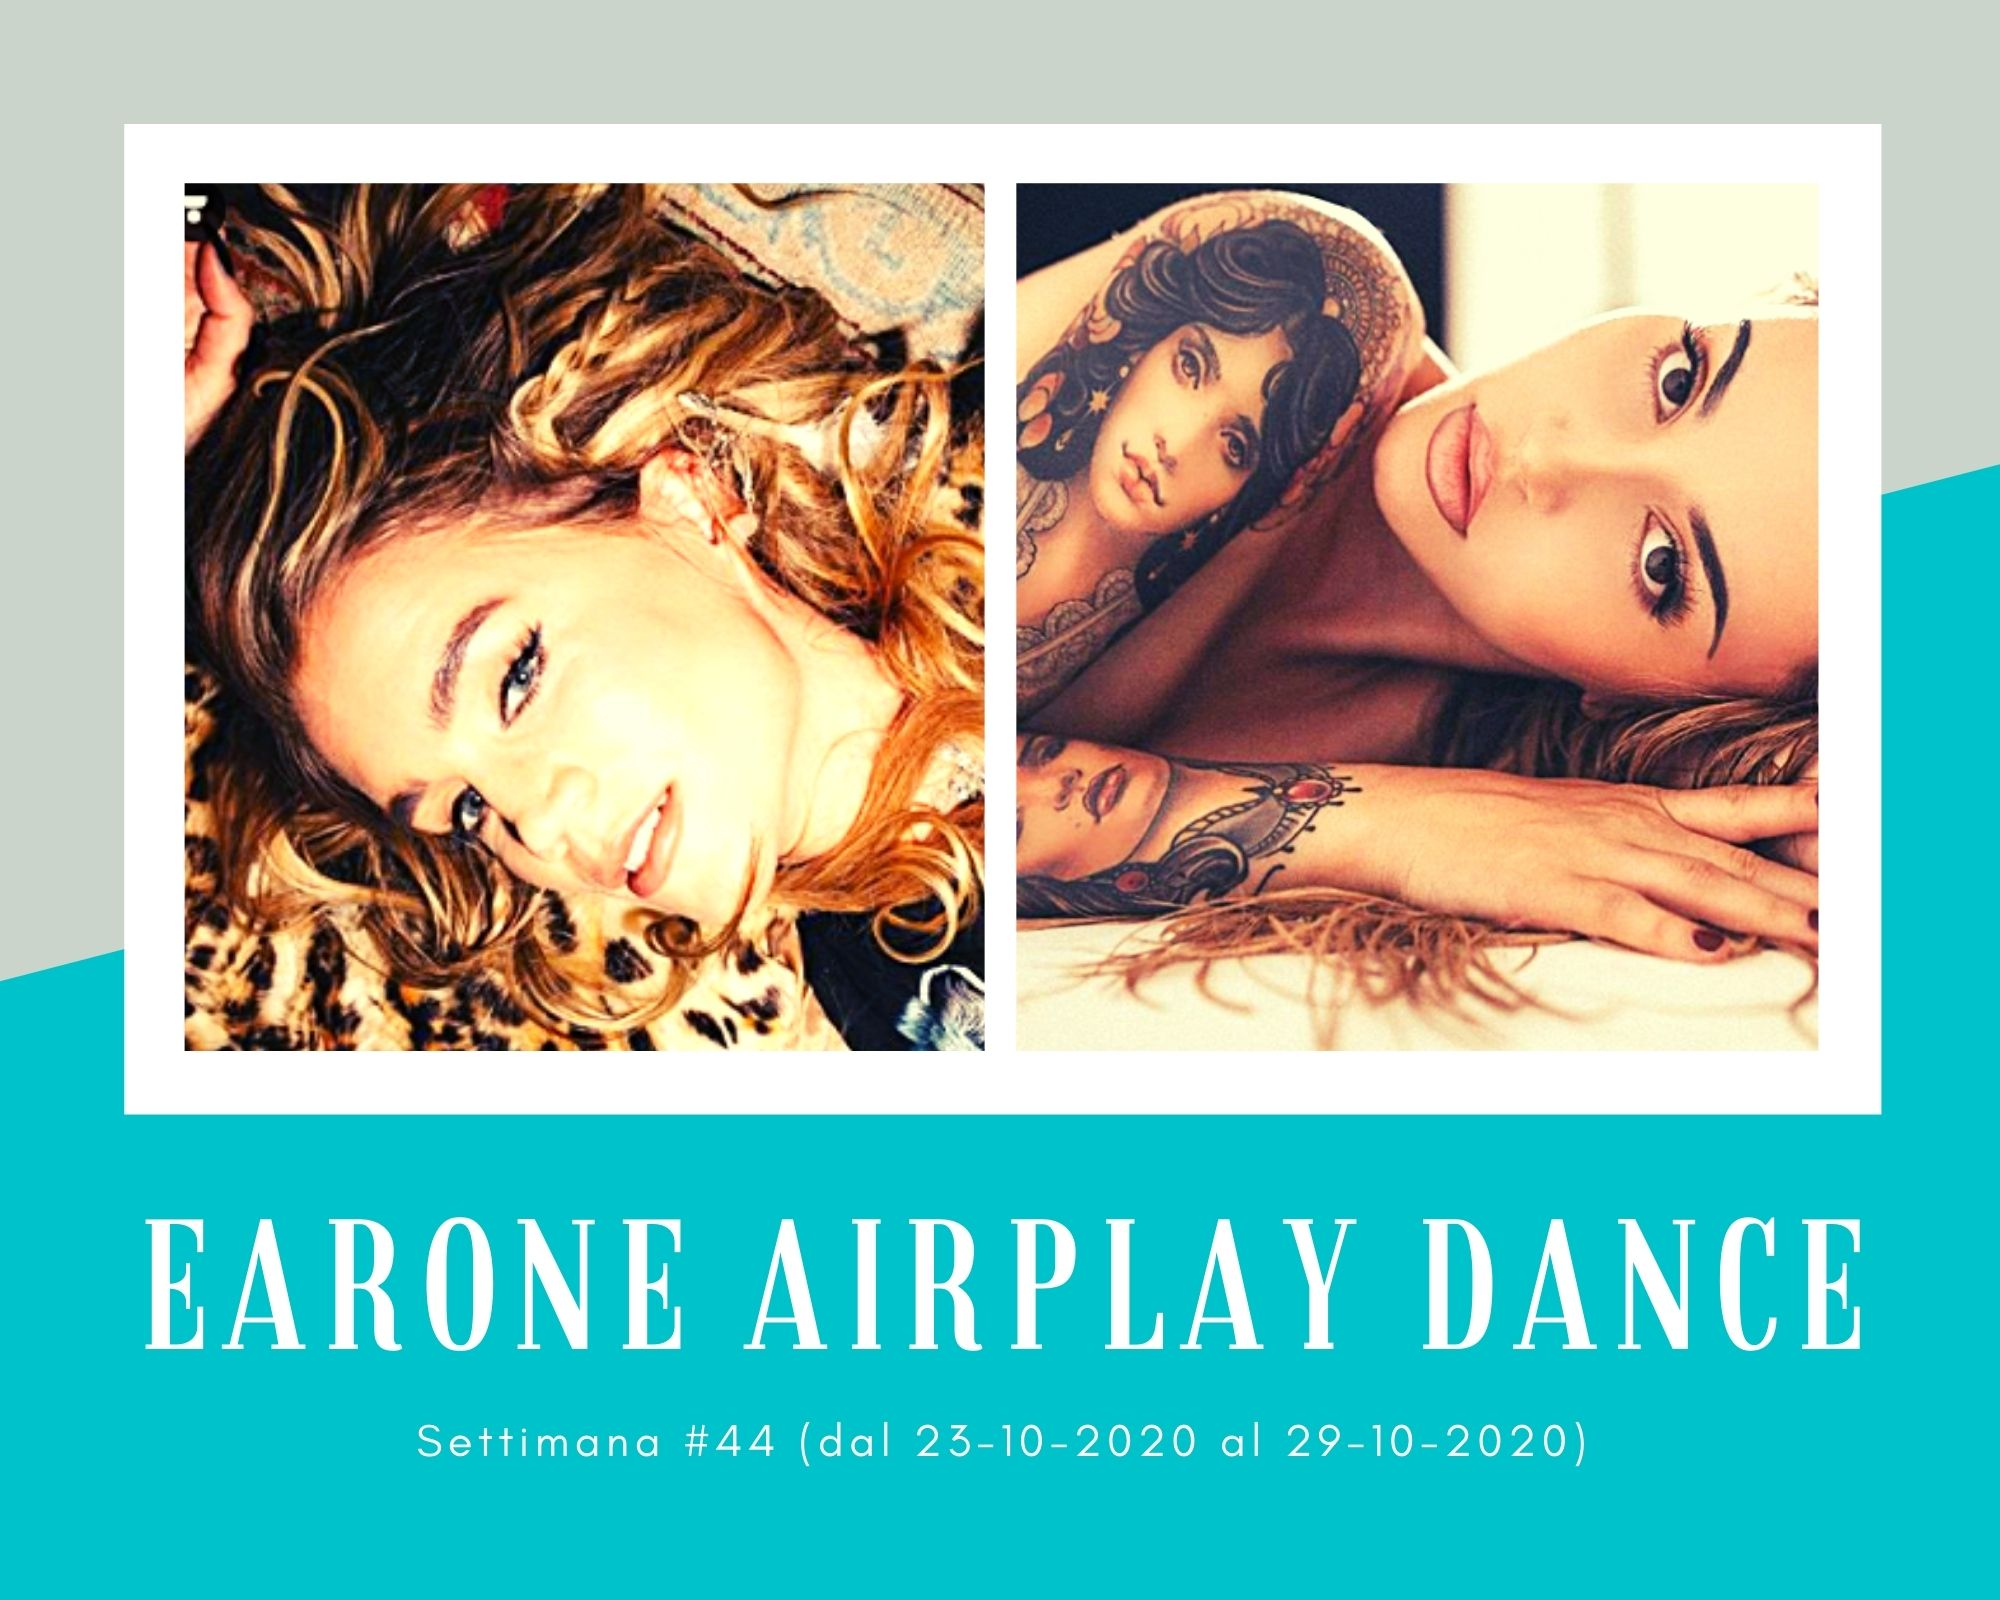 Classifica Radio EARONE Airplay Dance, week 44. Ilira contro Kiddo, sfida tra vocalist